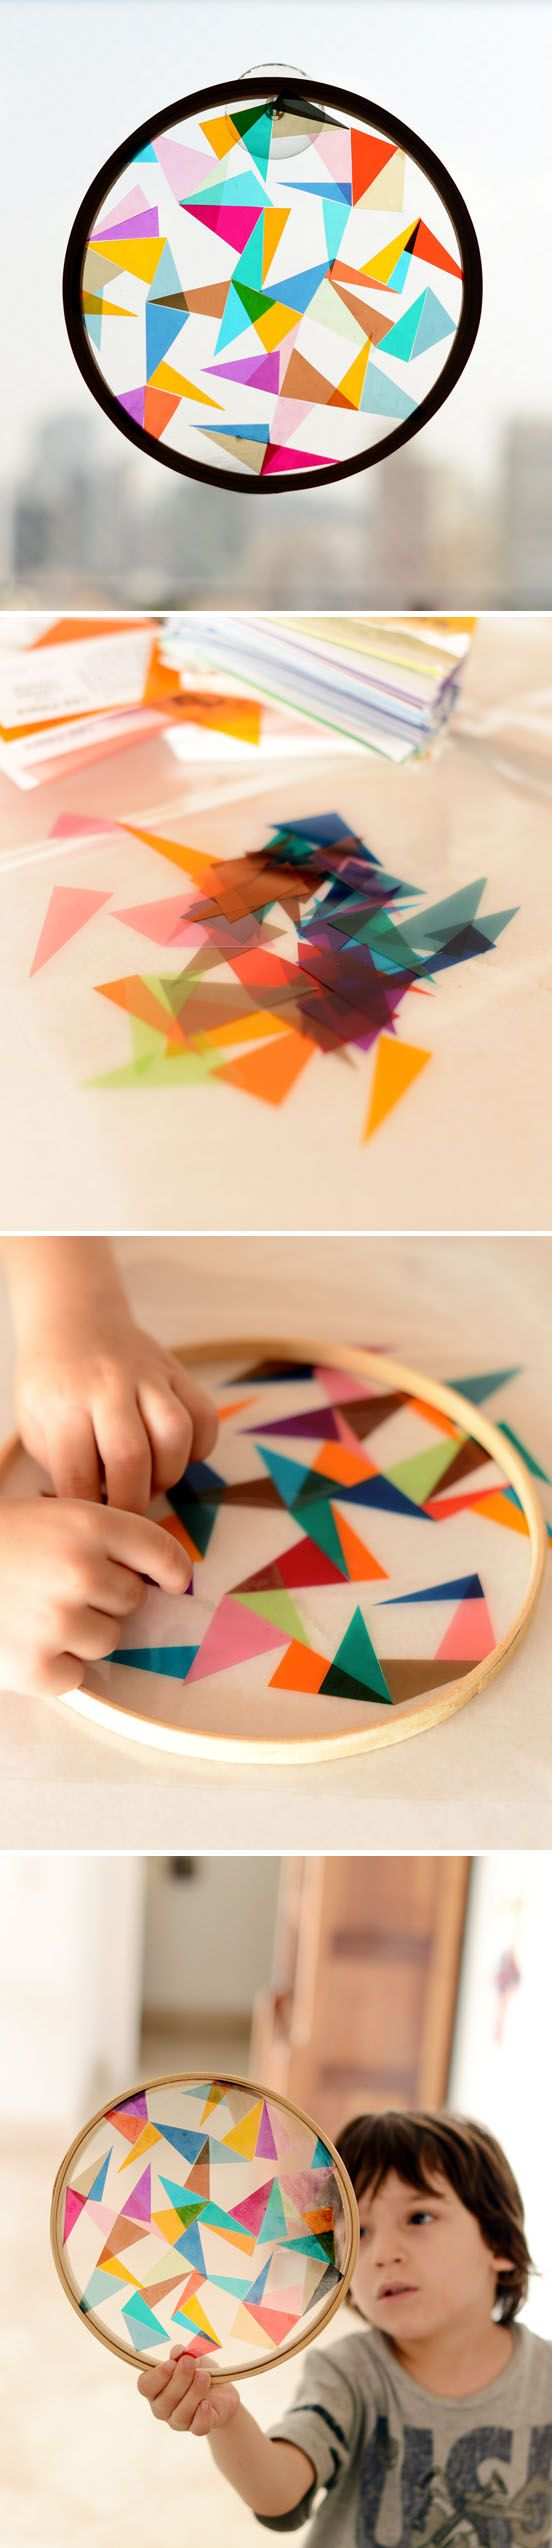 Kids Craft Ideas Pinterest Part - 28: DIY Colorful Geometric Sun Catcher - Fun Craft Activity For Kids